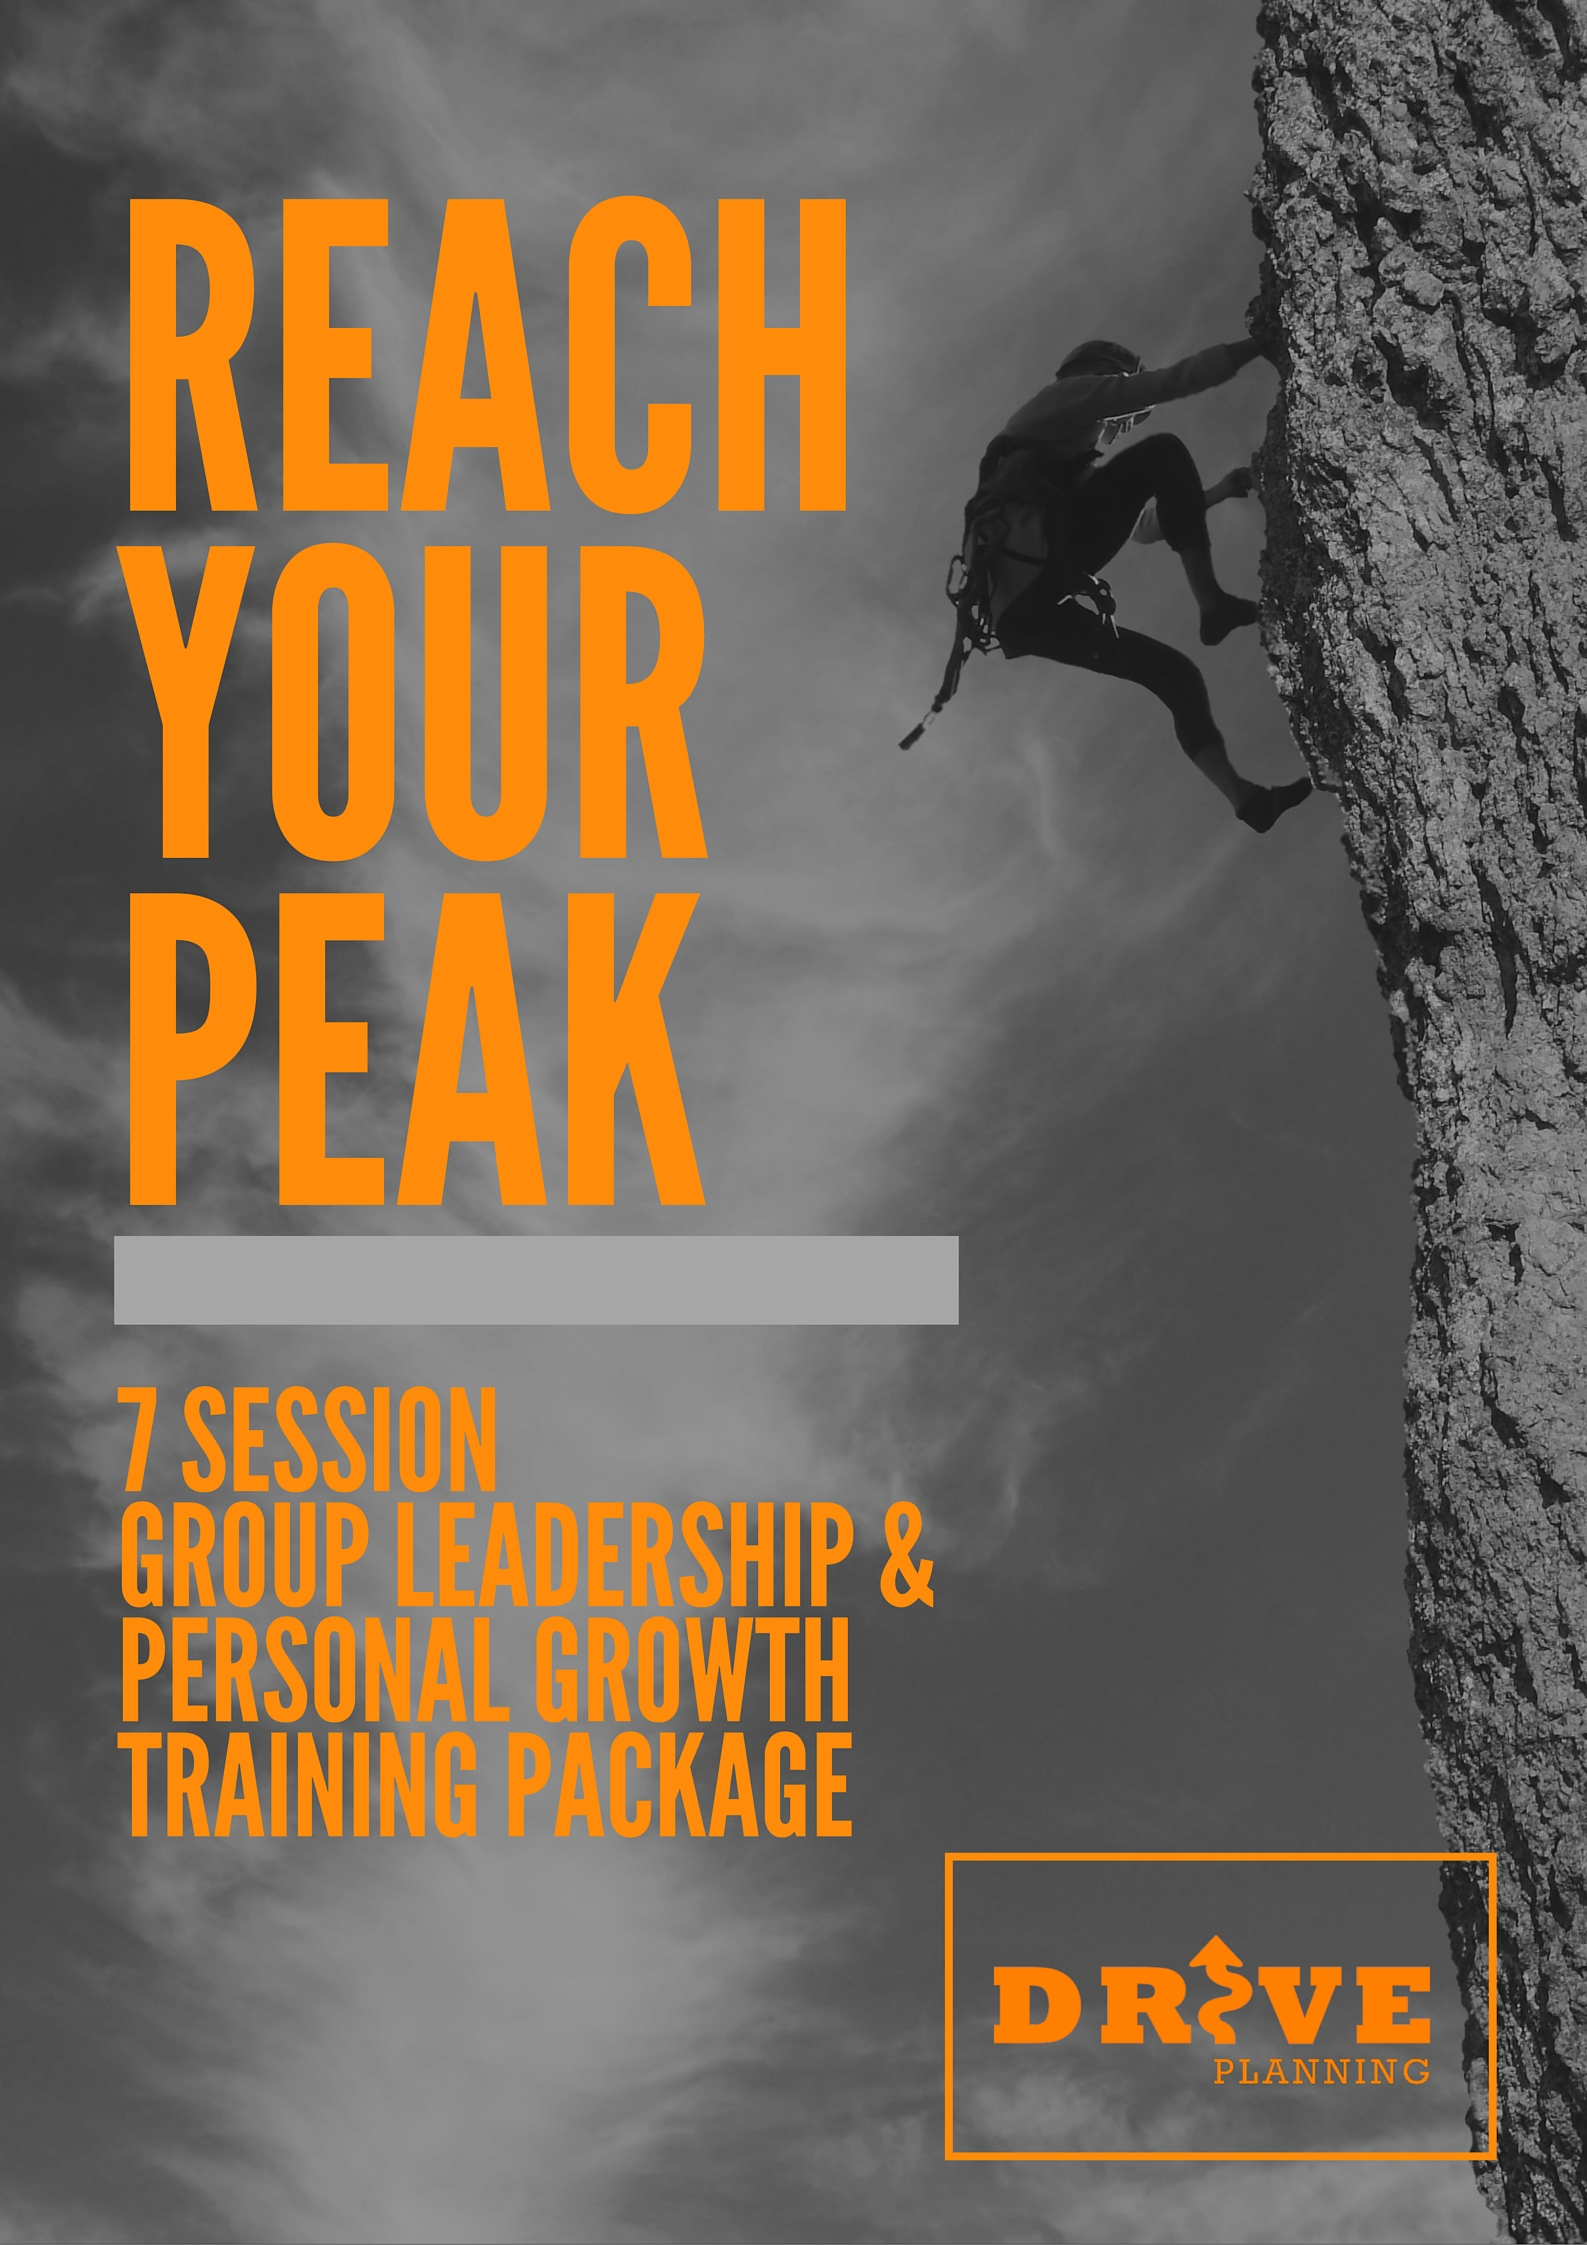 REACH YOUR PEAK Training Ad